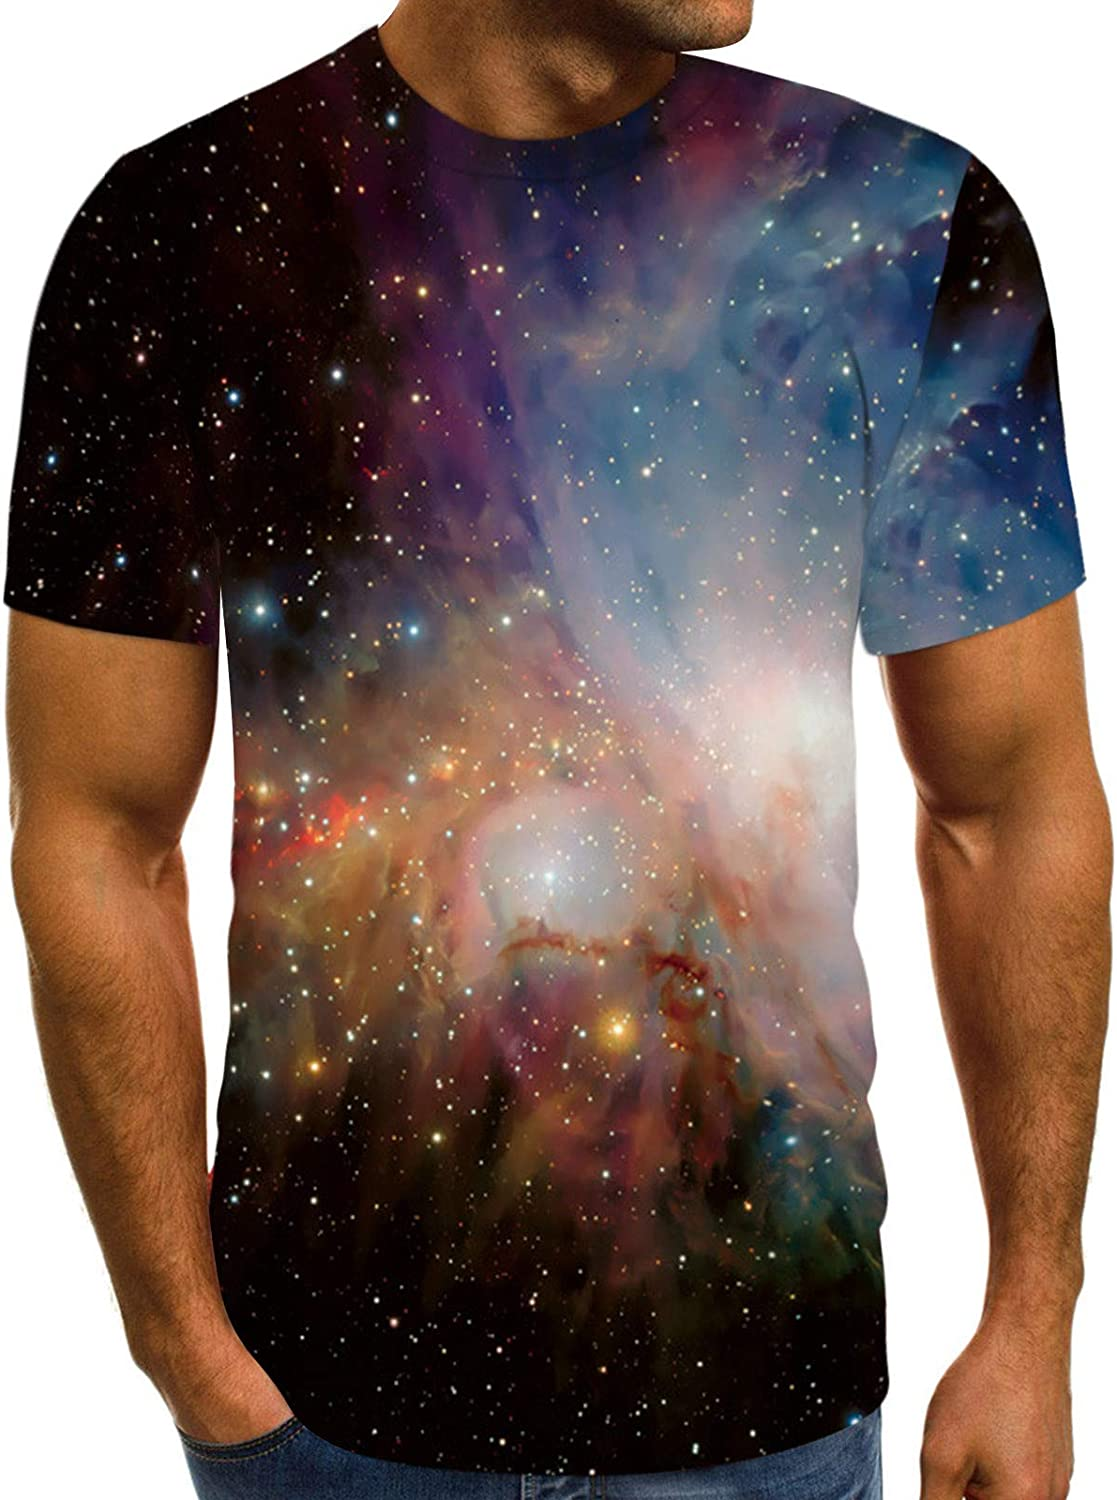 7789 Universe Gifts for Men Boys Short Sleeve Galaxy 3D T-Shirts Crew Neck Short Sleeve Tops Blouse